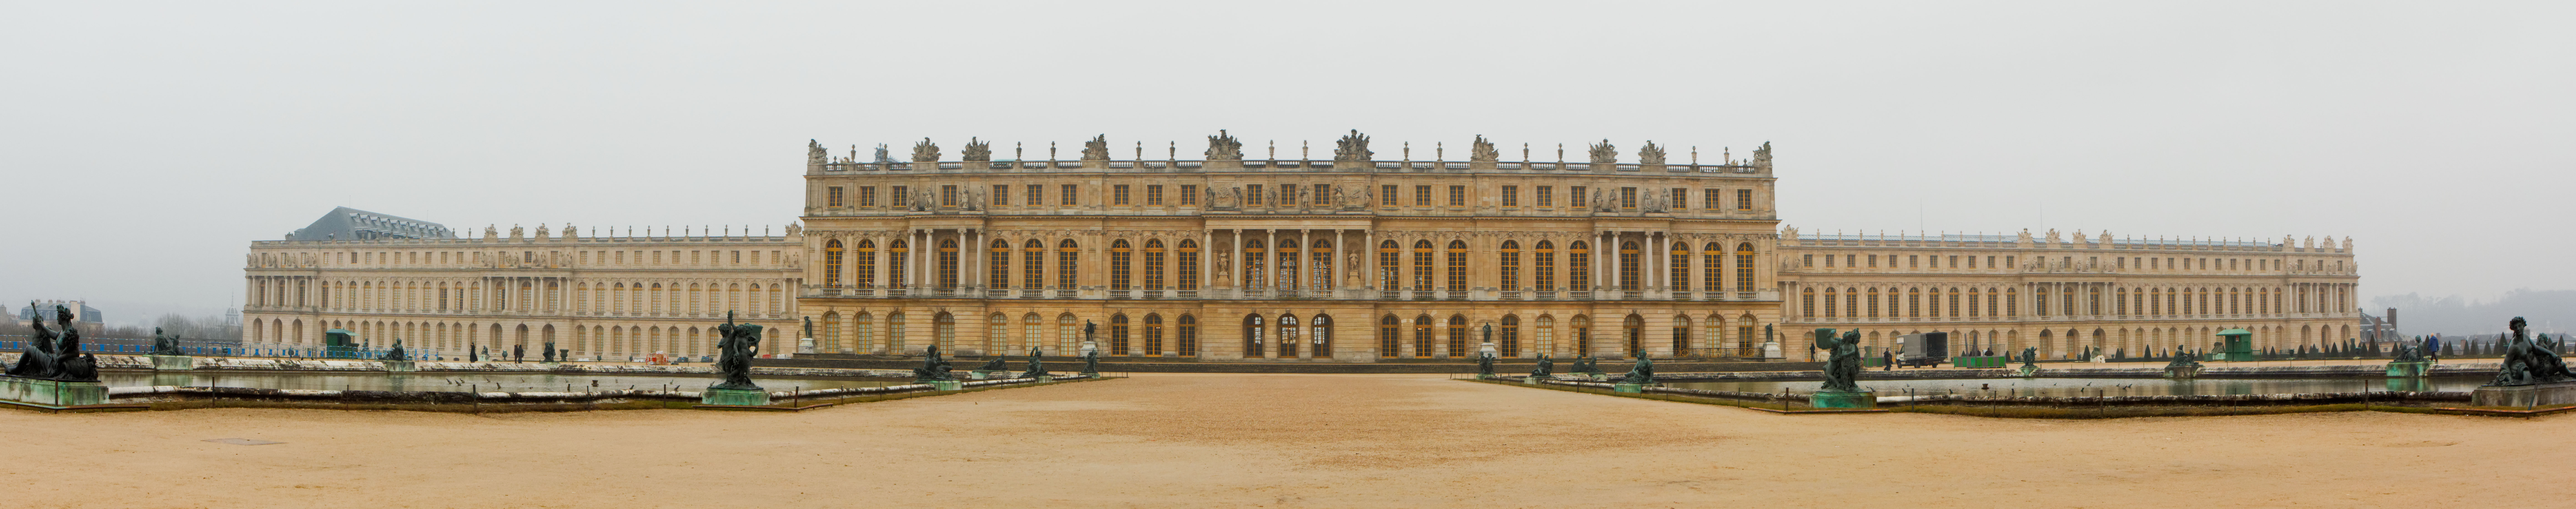 chateau de versailles The hall of mirrors, king's grand apartments, museum of the history of france, explore the château de versailles, its gardens, the grand trianon and marie.